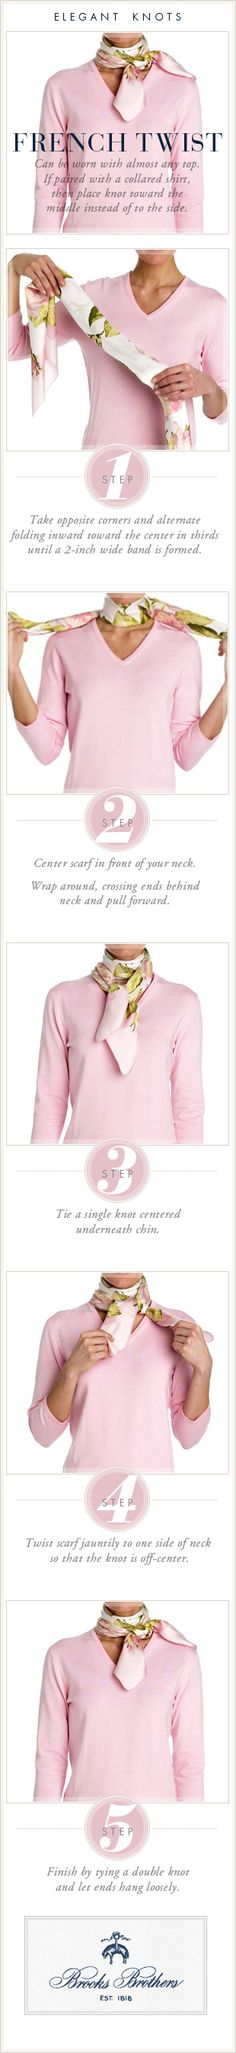 French Twist for scarves - thank you Brooks Brothers